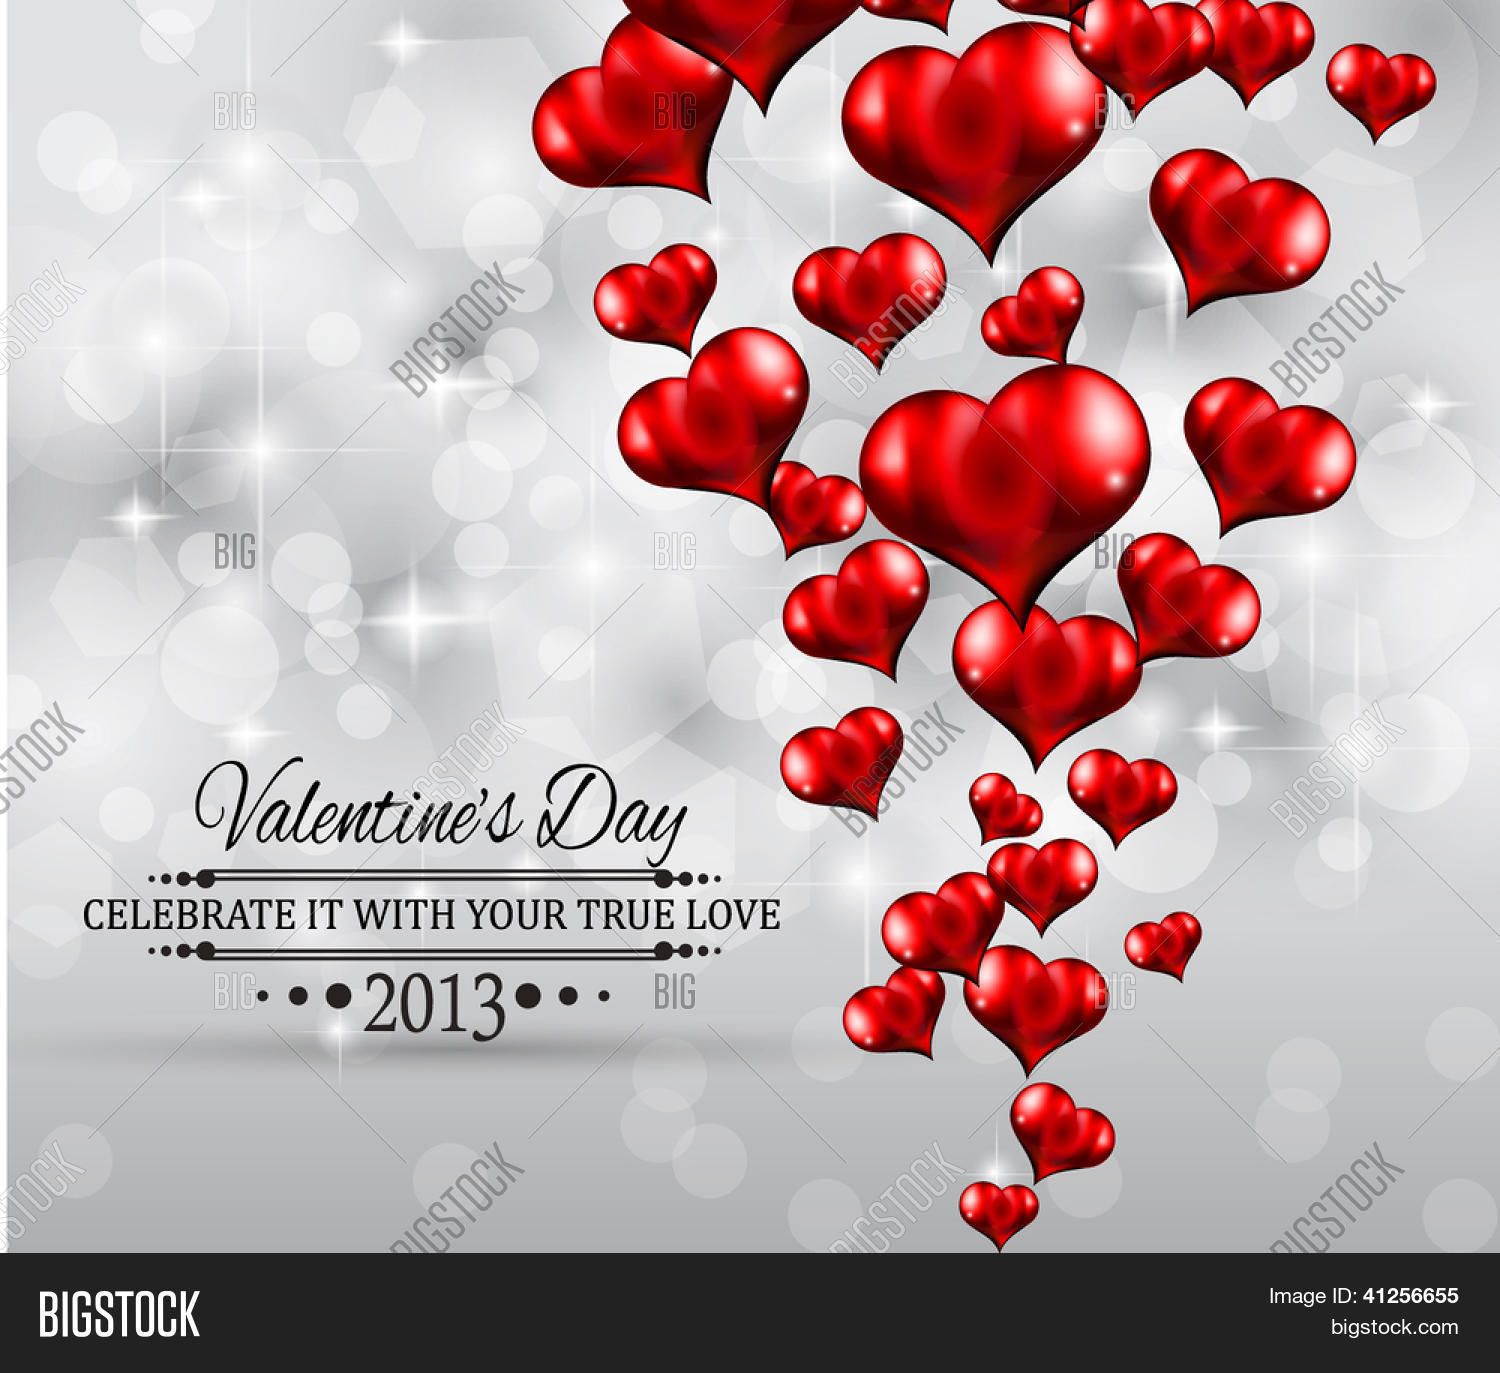 Valentine\'s Day Party Invitation Vector & Photo | Bigstock